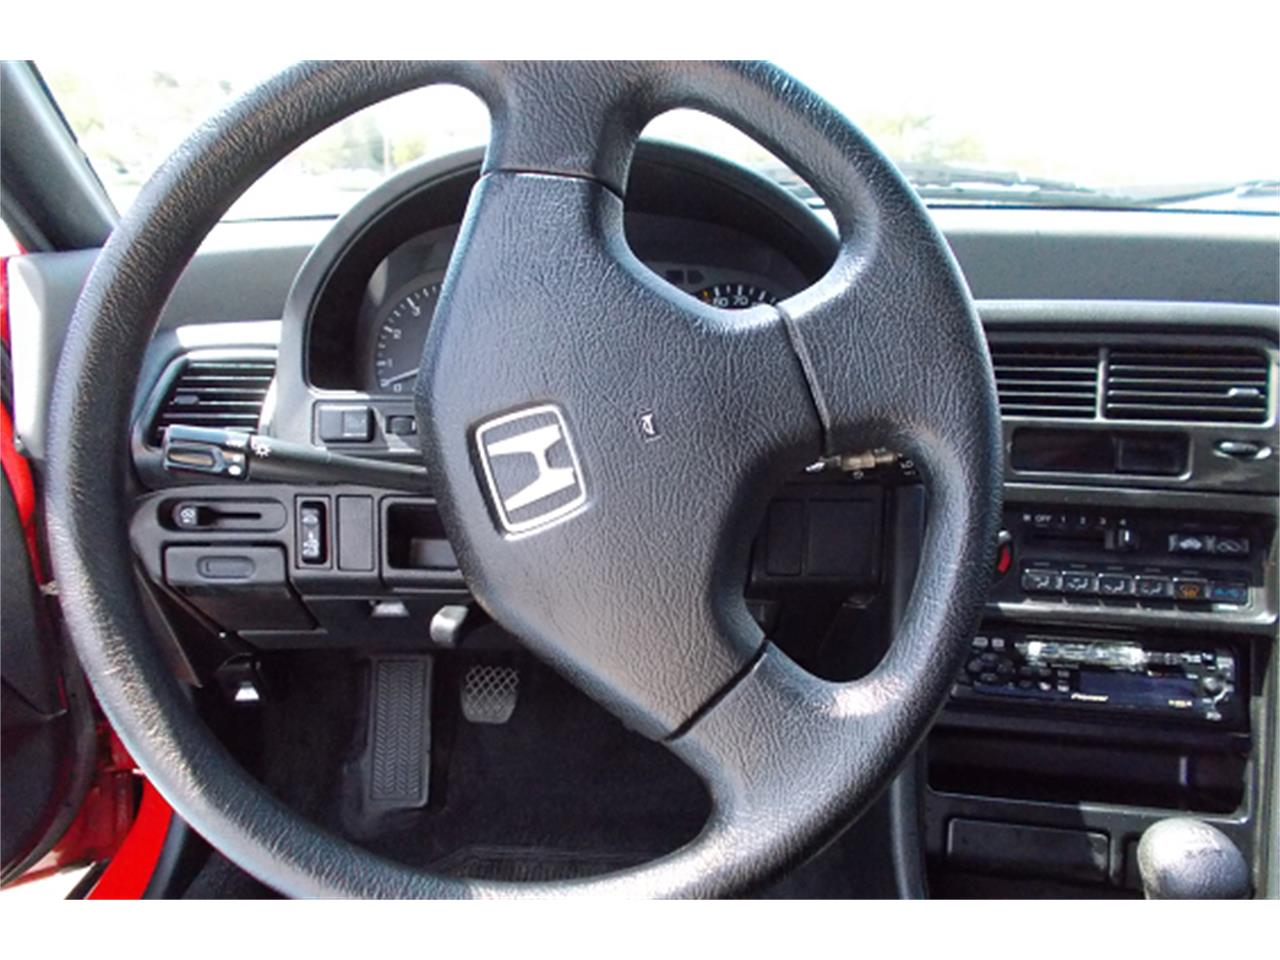 Large Picture of '90 CRX located in Dublin Georgia - $18,000.00 Offered by a Private Seller - N5R3